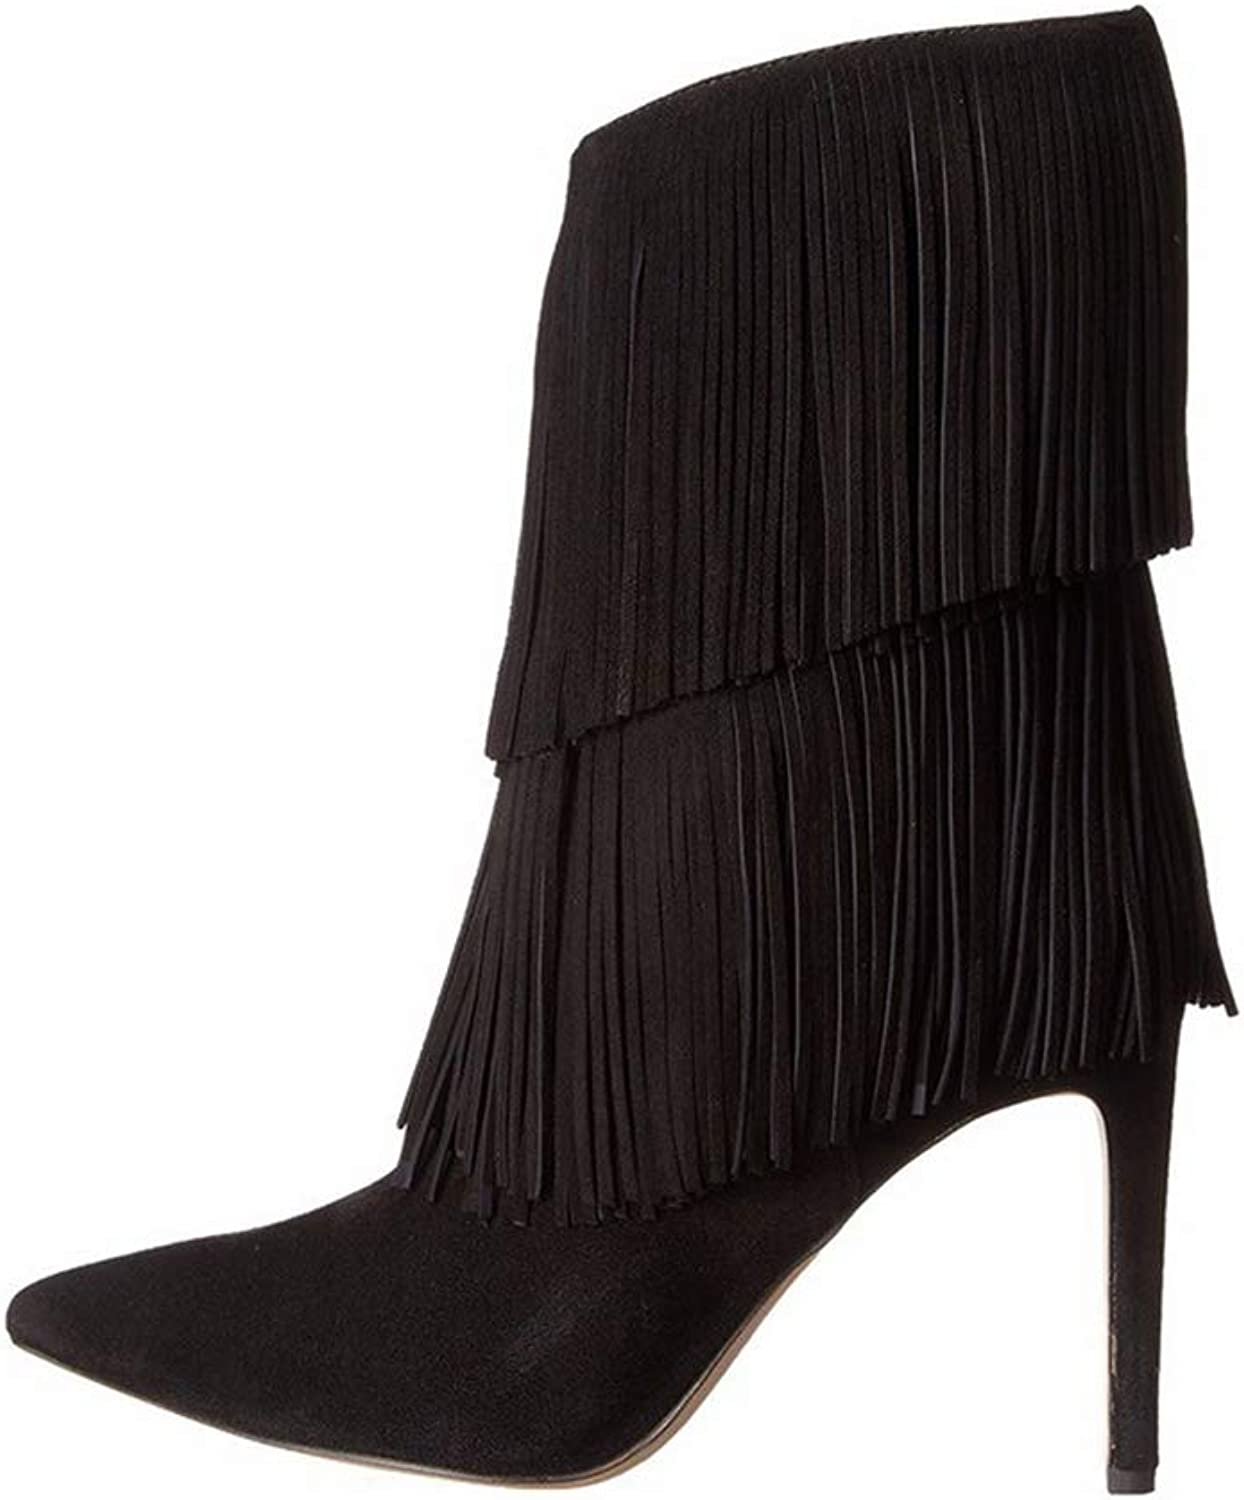 Ladies Booties, Fall Winter High Heel Pointed Fine Heel Ankle Boots Women's Suede PU Fashion Fringe Boots (color   C, Size   36)